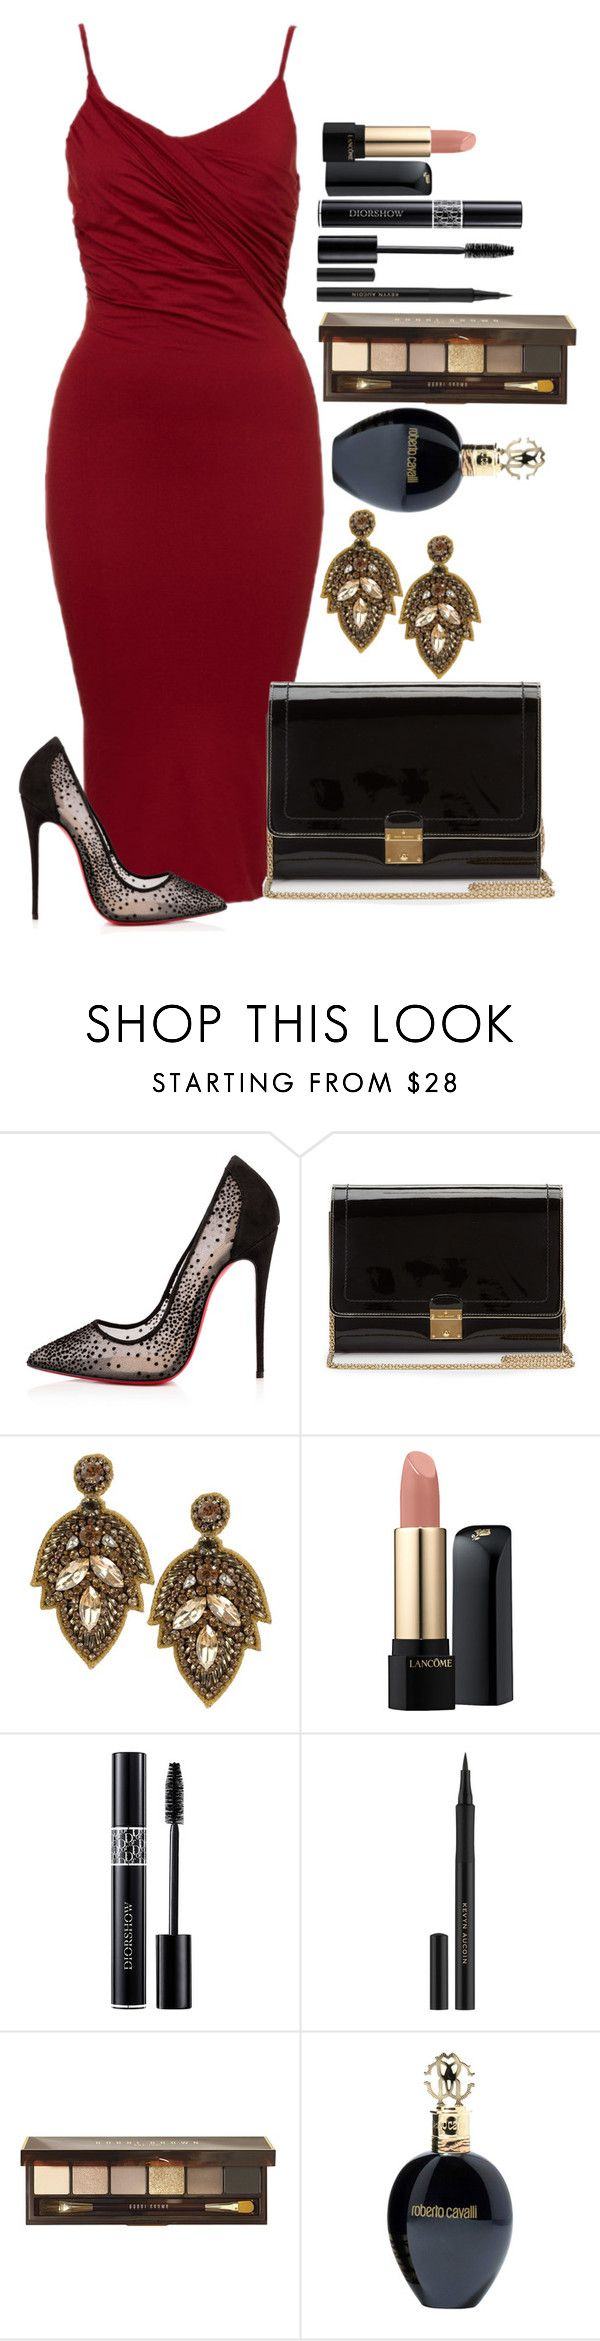 """Untitled #1145"" by fabianarveloc on Polyvore featuring Christian Louboutin, Marc Jacobs, Deepa Gurnani, Lancôme, Christian Dior, Kevyn Aucoin, Bobbi Brown Cosmetics, Roberto Cavalli, women's clothing and women"